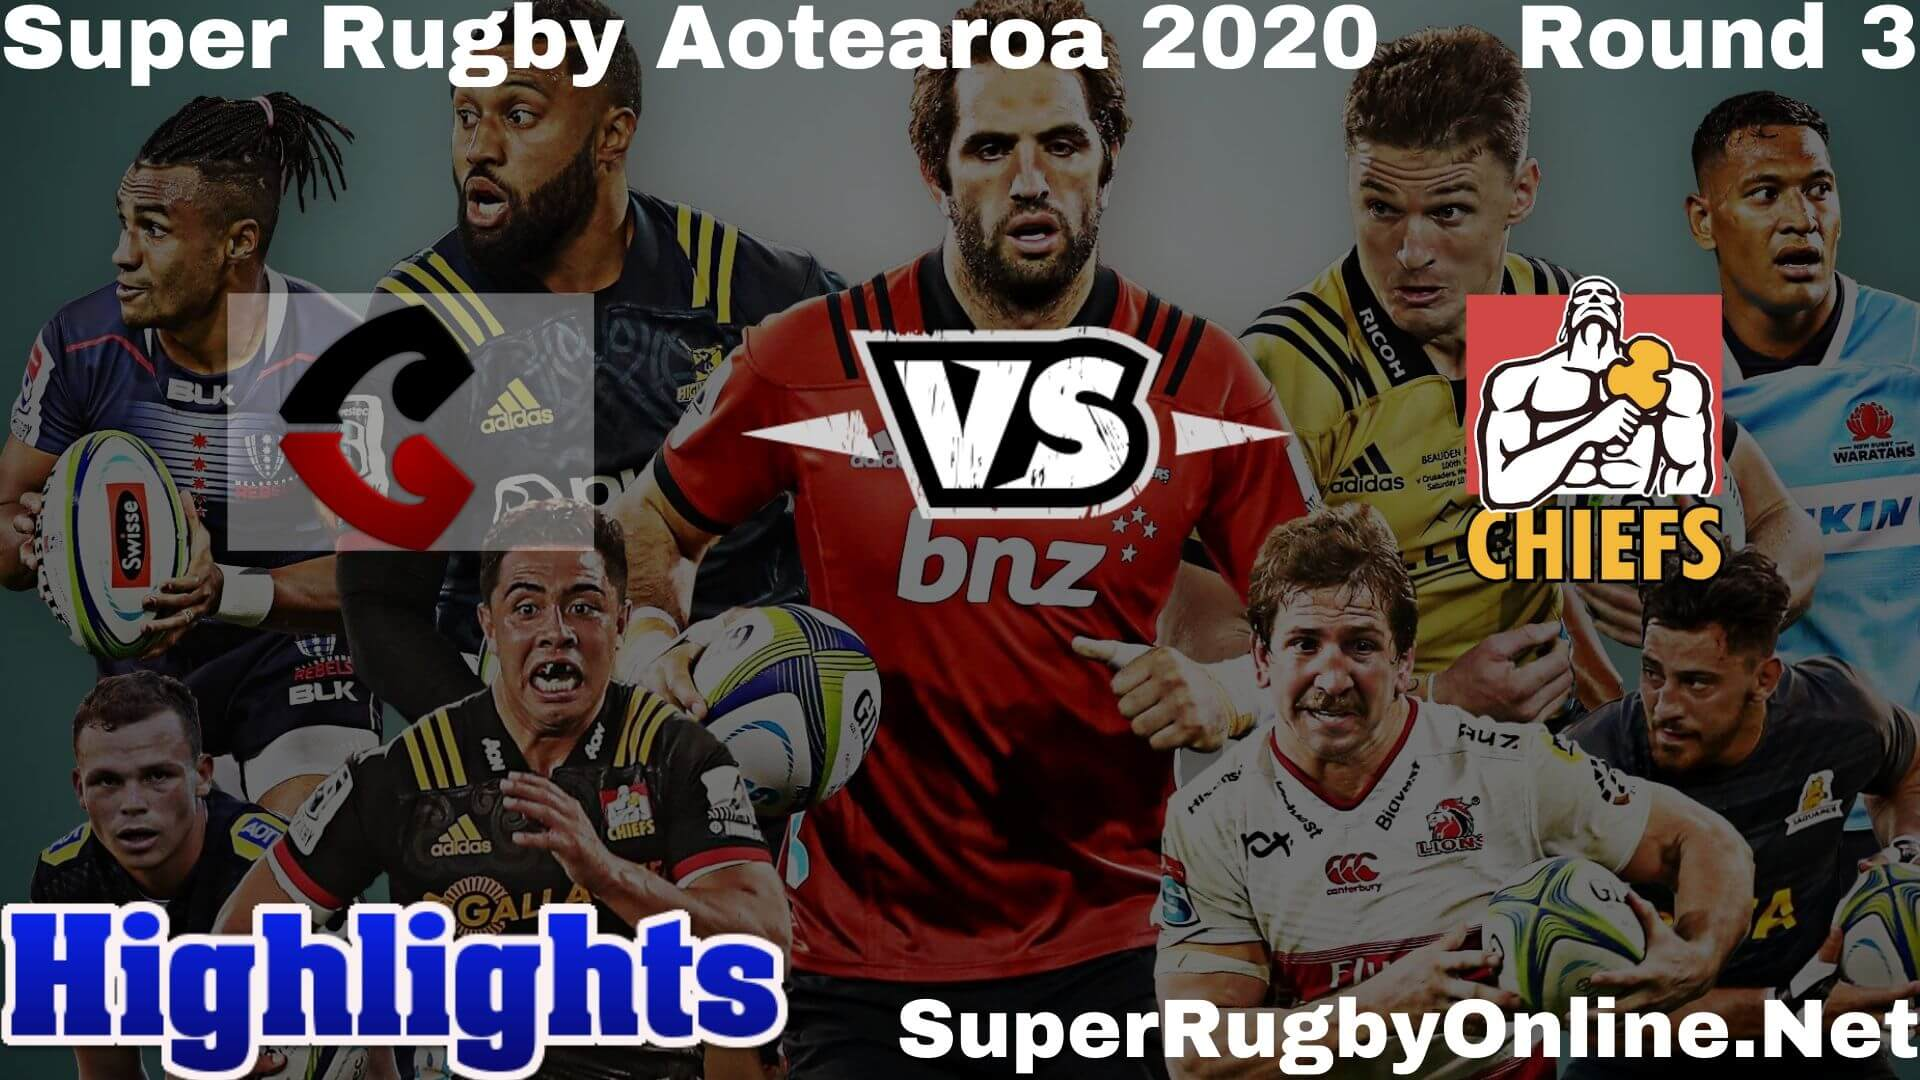 Crusaders Vs Chiefs Highlights Rd 3 Super Rugby 2020